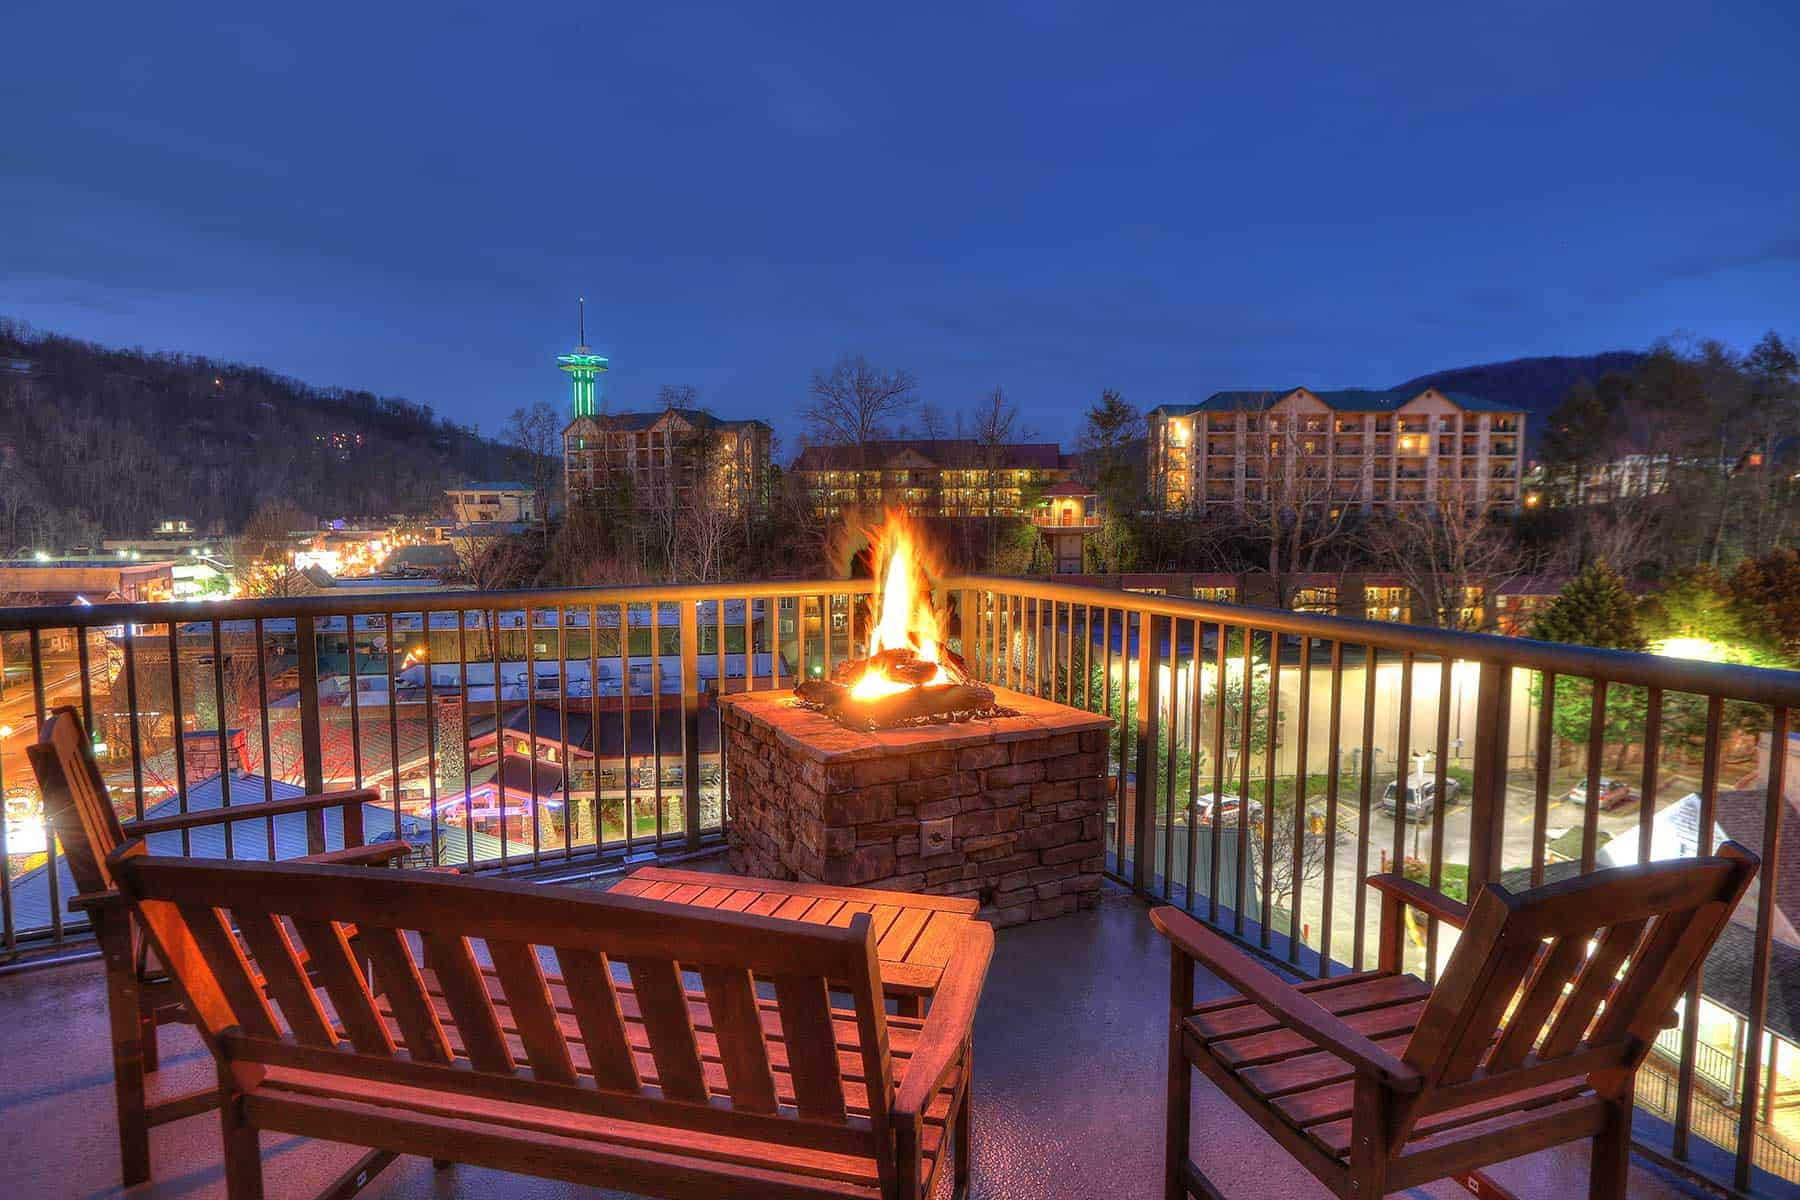 night view of Gatlinburg from hotel balcony